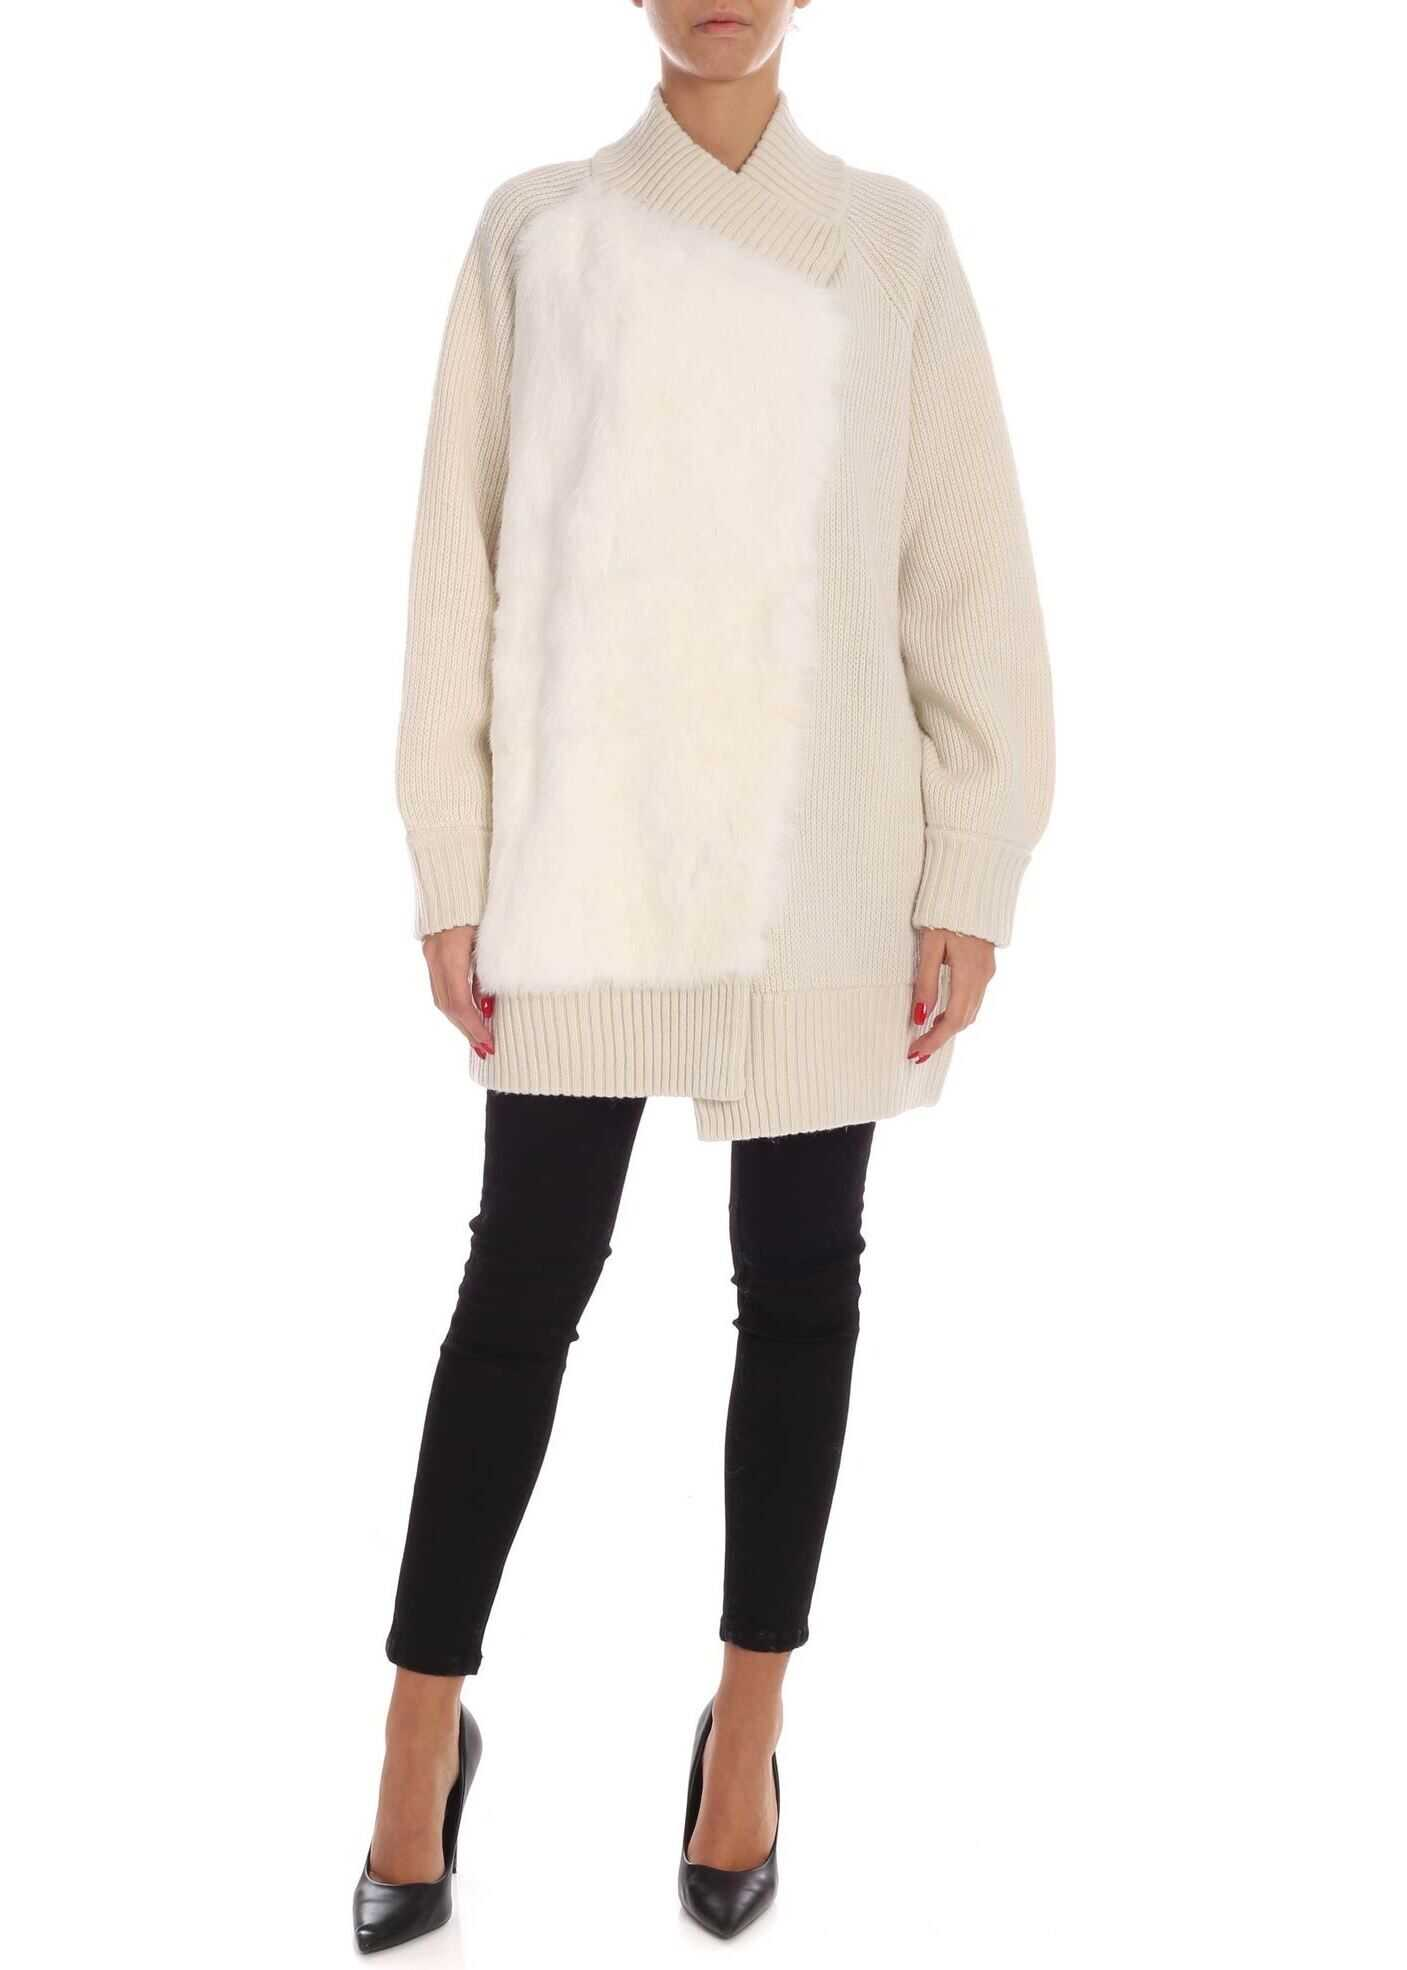 Fur Detail Cardigan In Cream Color thumbnail